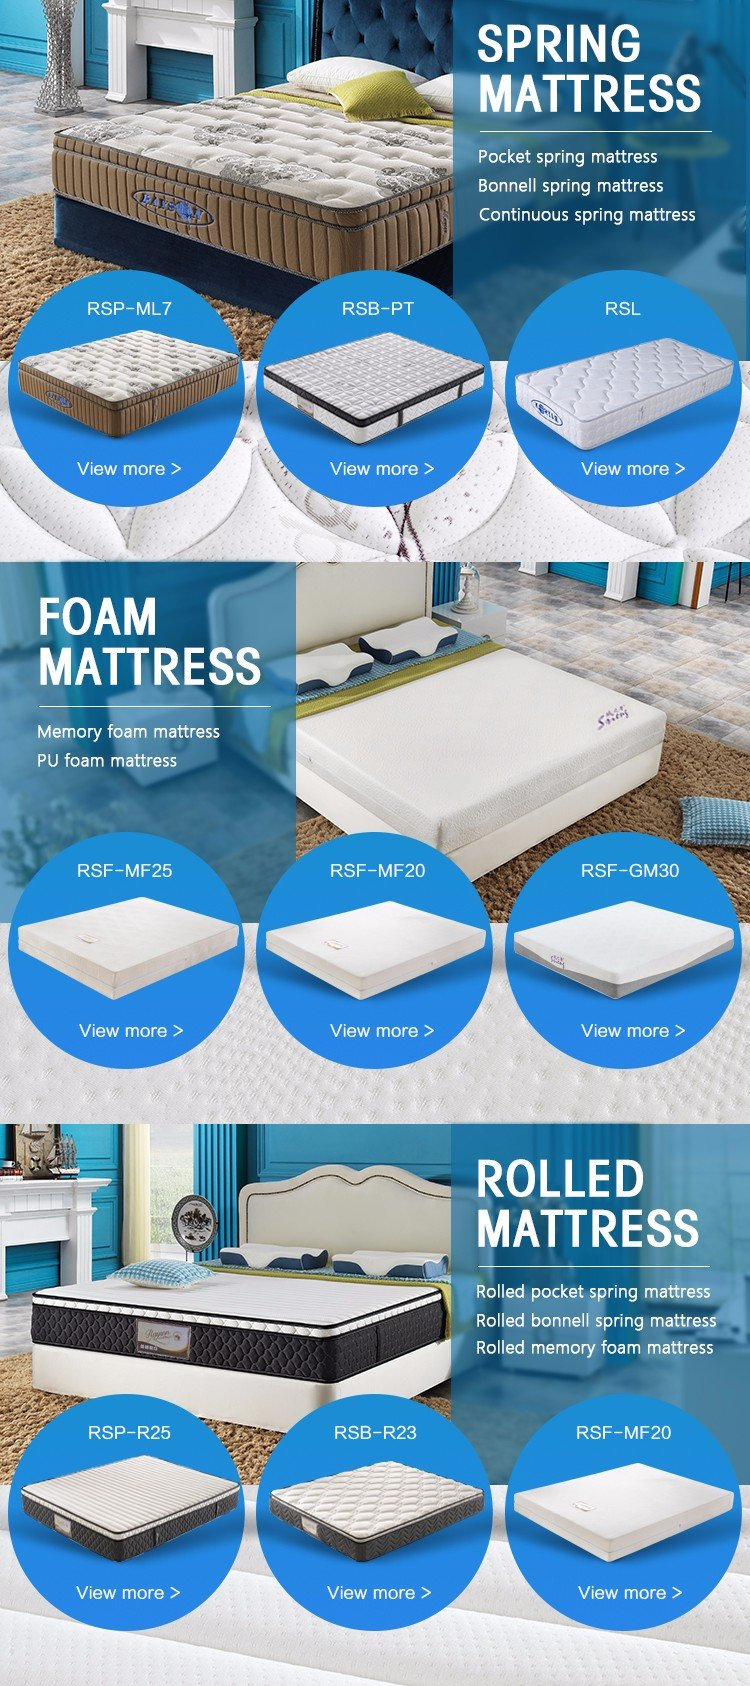 Rayson Mattress promotion old mattress collection Suppliers-7